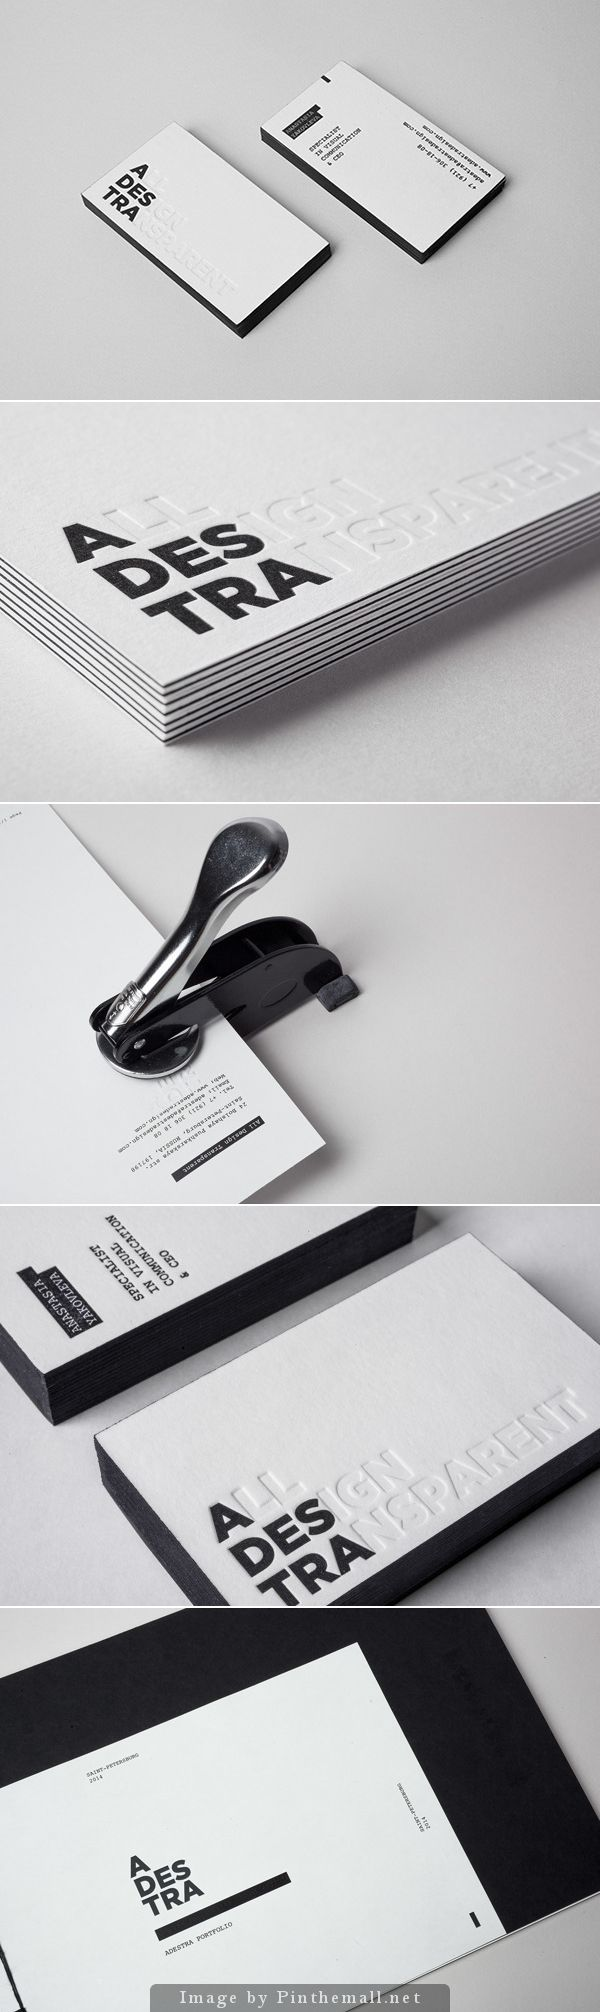 designing with black and white 50 striking examples for your inspiration corporate design. Black Bedroom Furniture Sets. Home Design Ideas